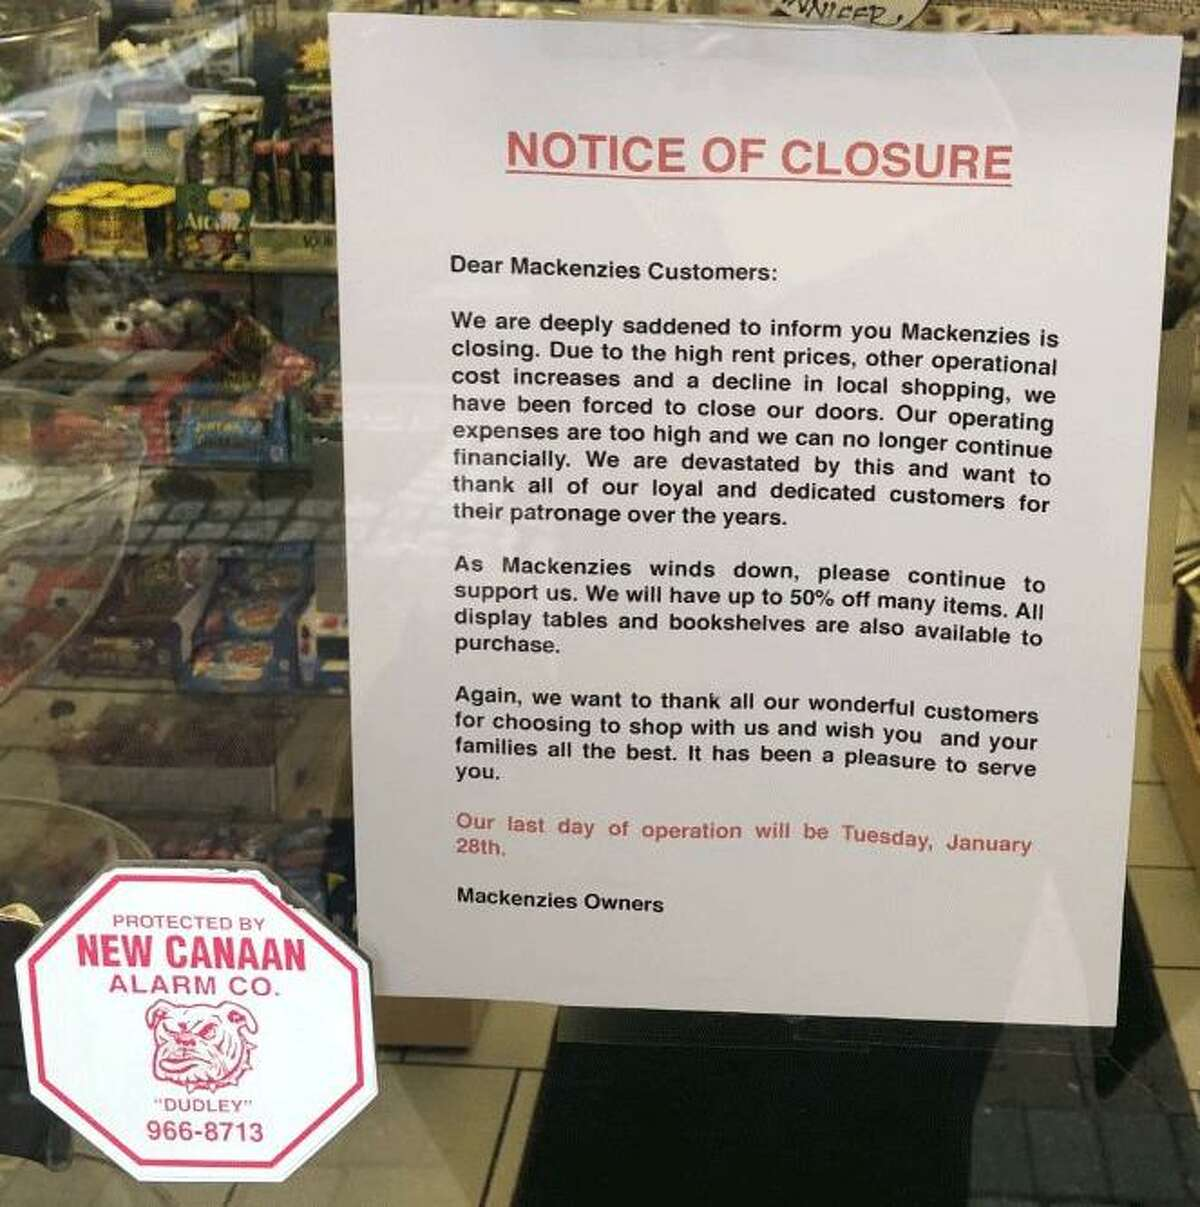 The Mackenzies store on South Avenue in New Canaan will be closing at the end of January, reads a sign on the store's door.